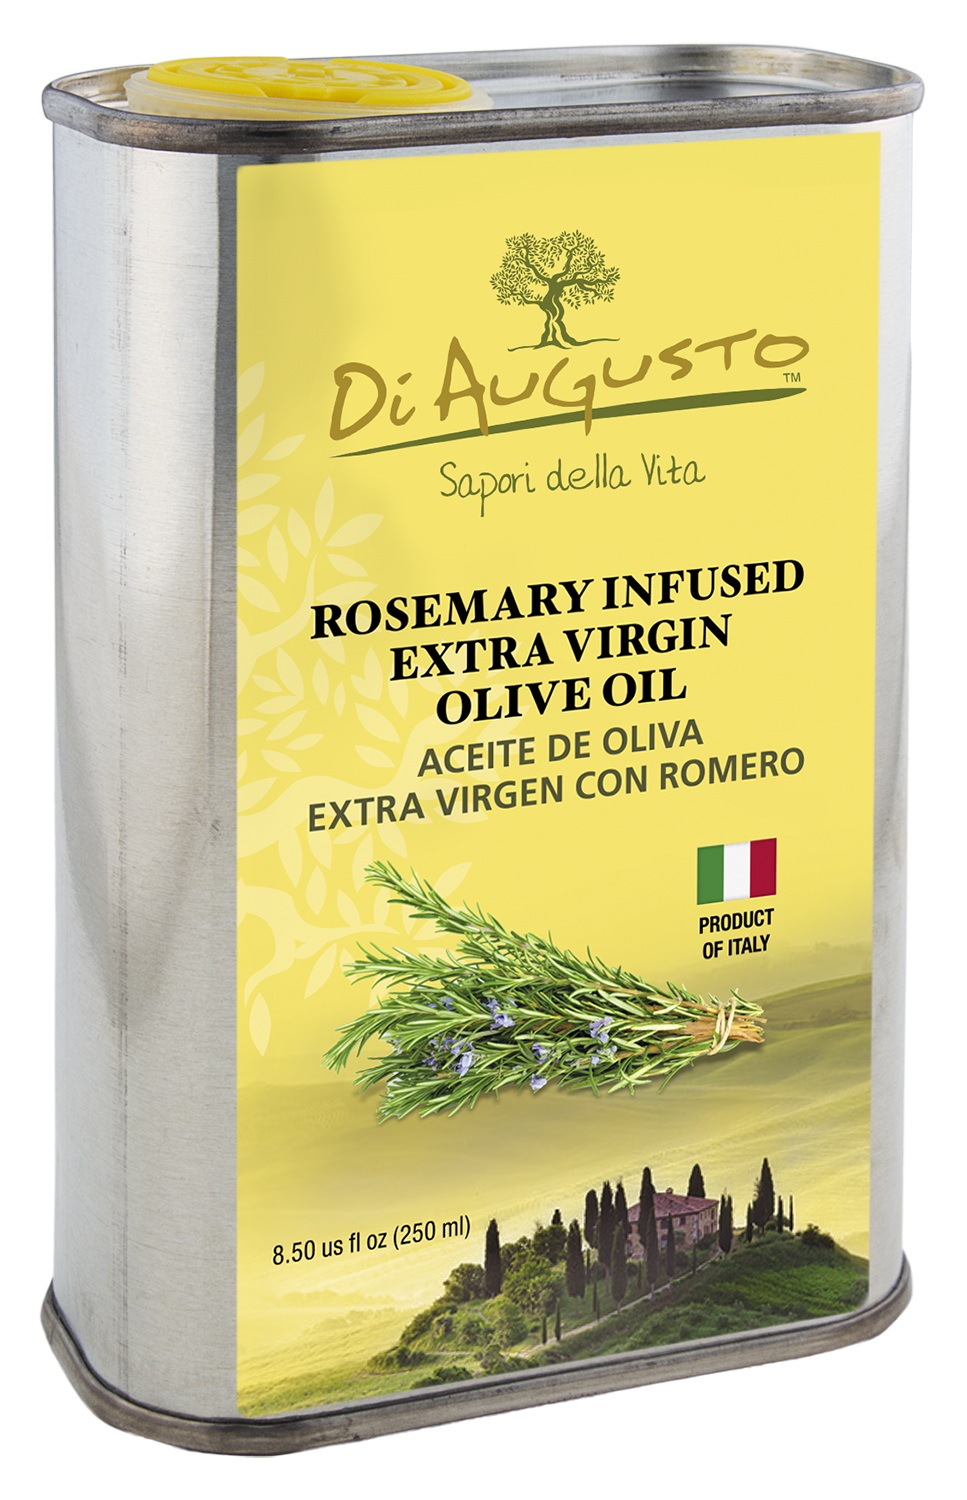 Frantoio Augusto Infused Oil - Rosemary 0122